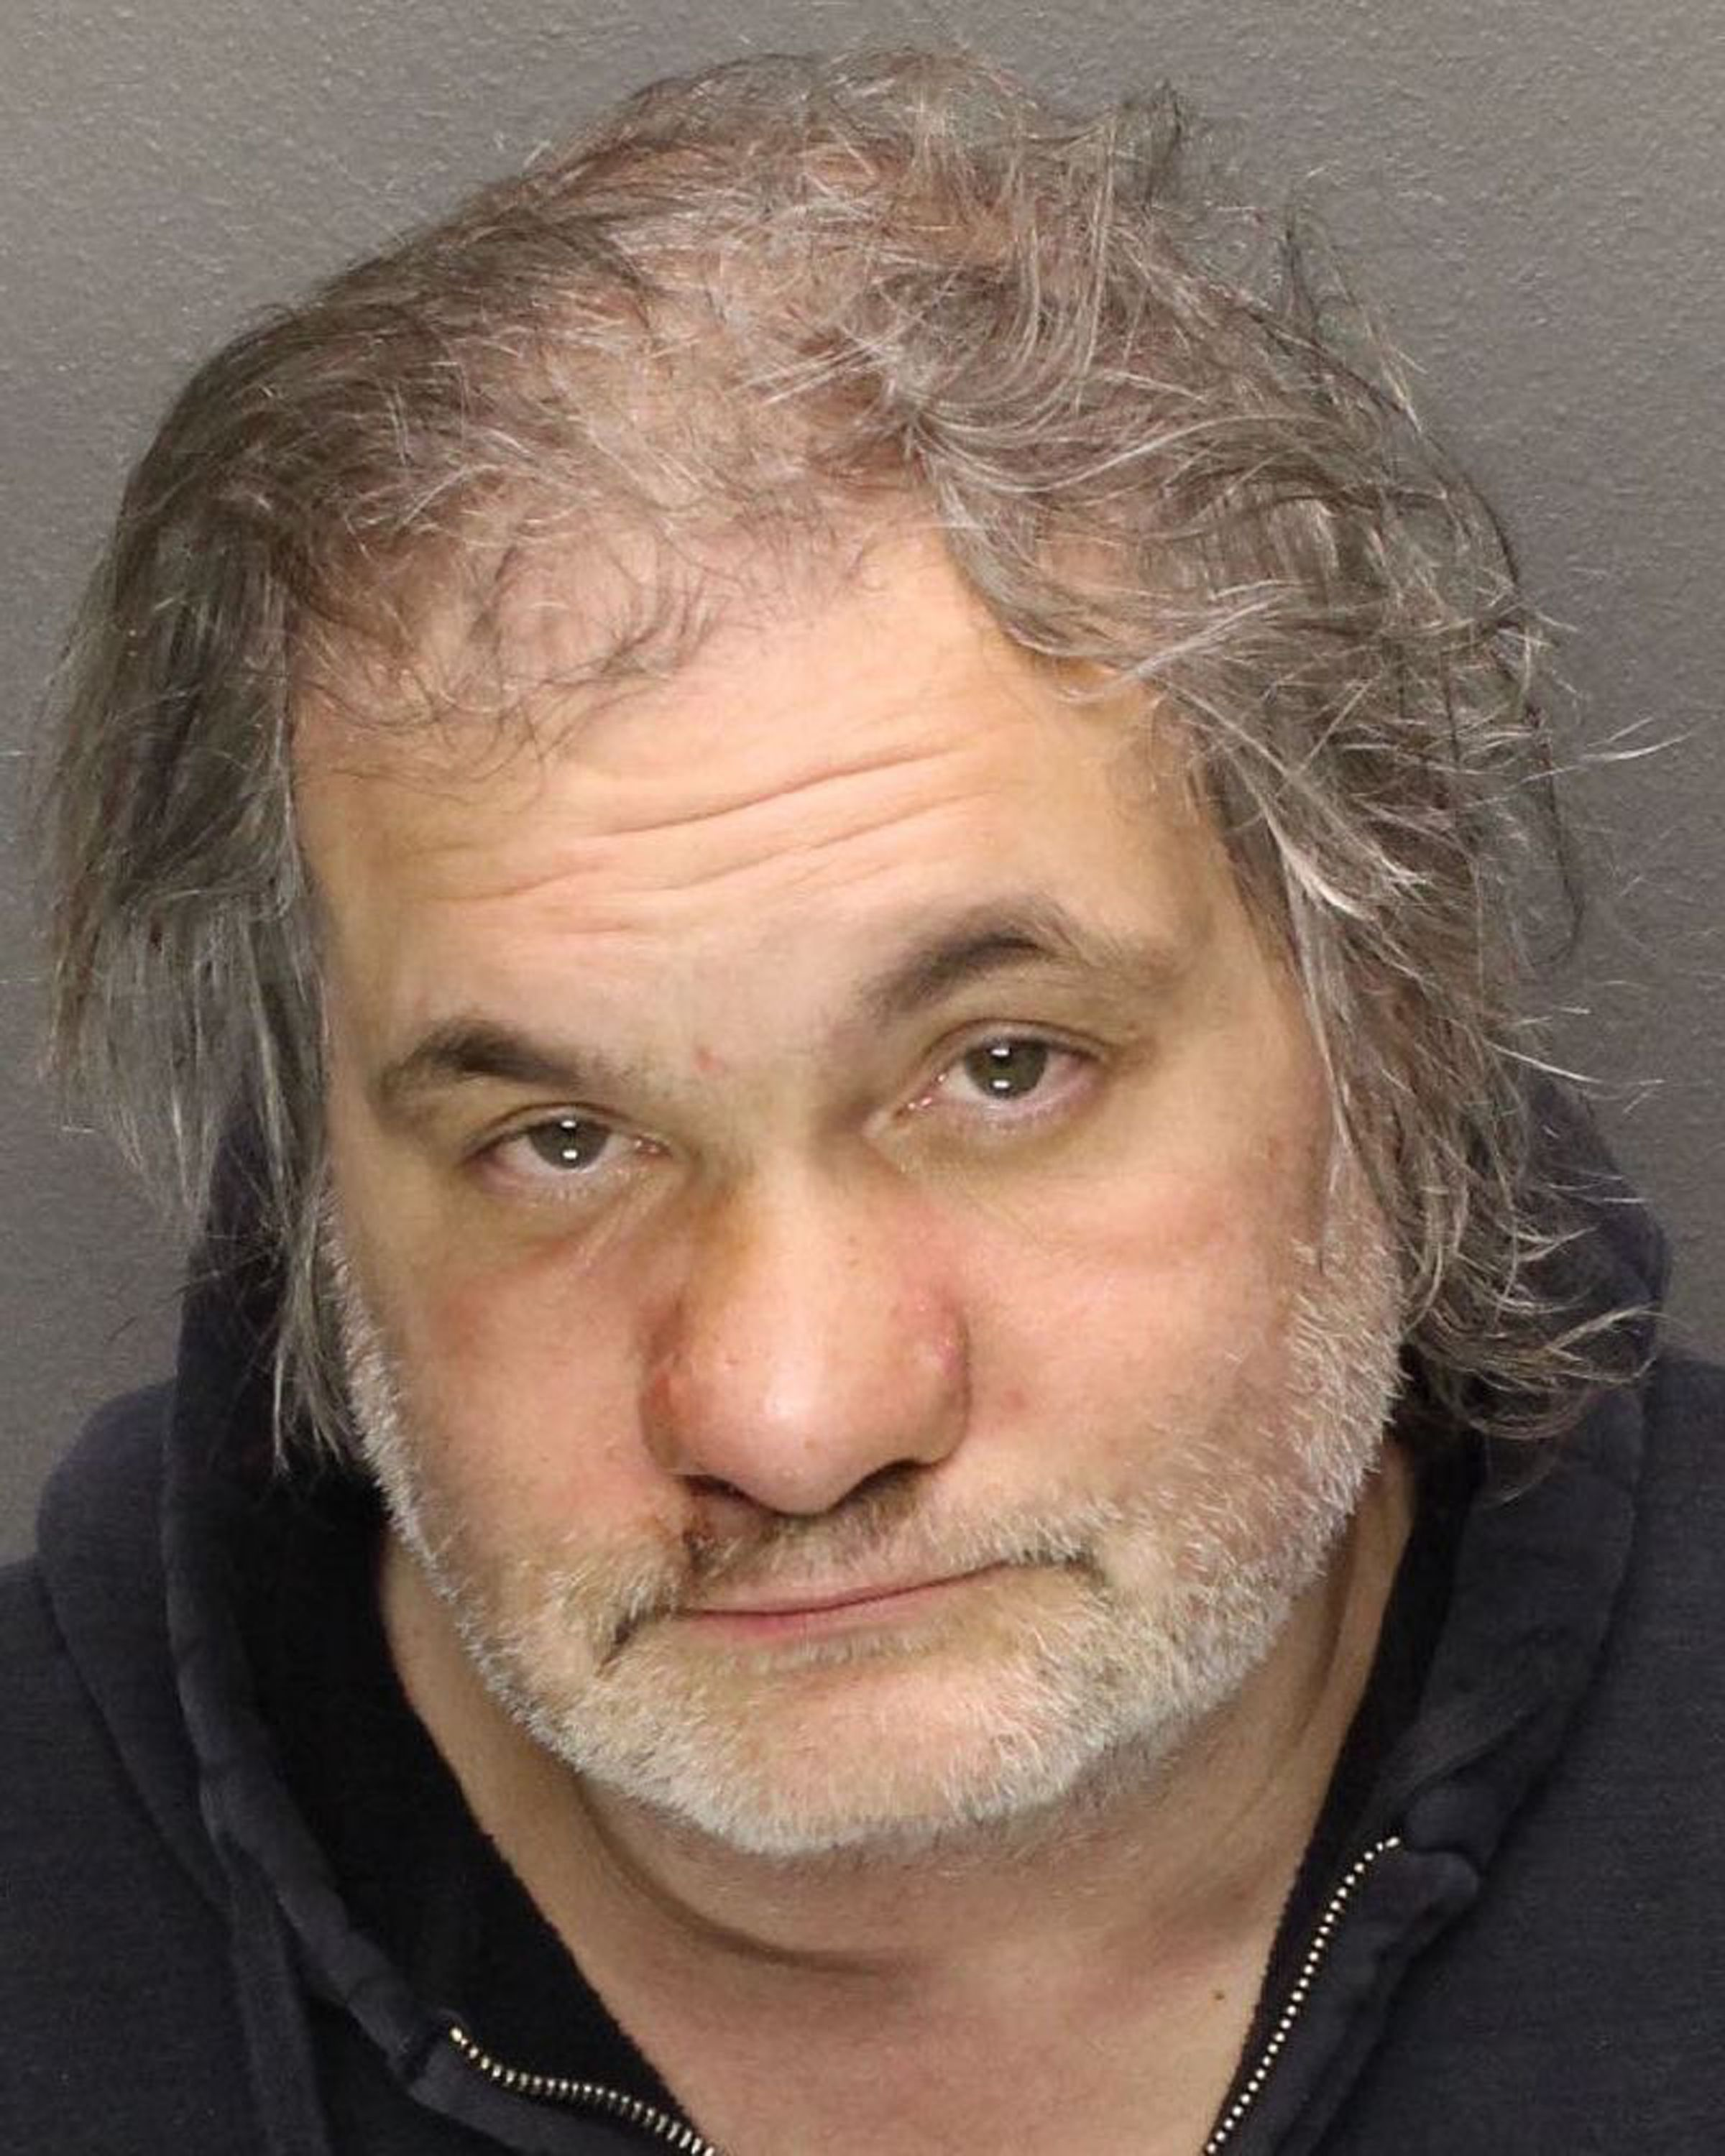 a nose for rehab comedy artie lange tweets photo of deformed nose